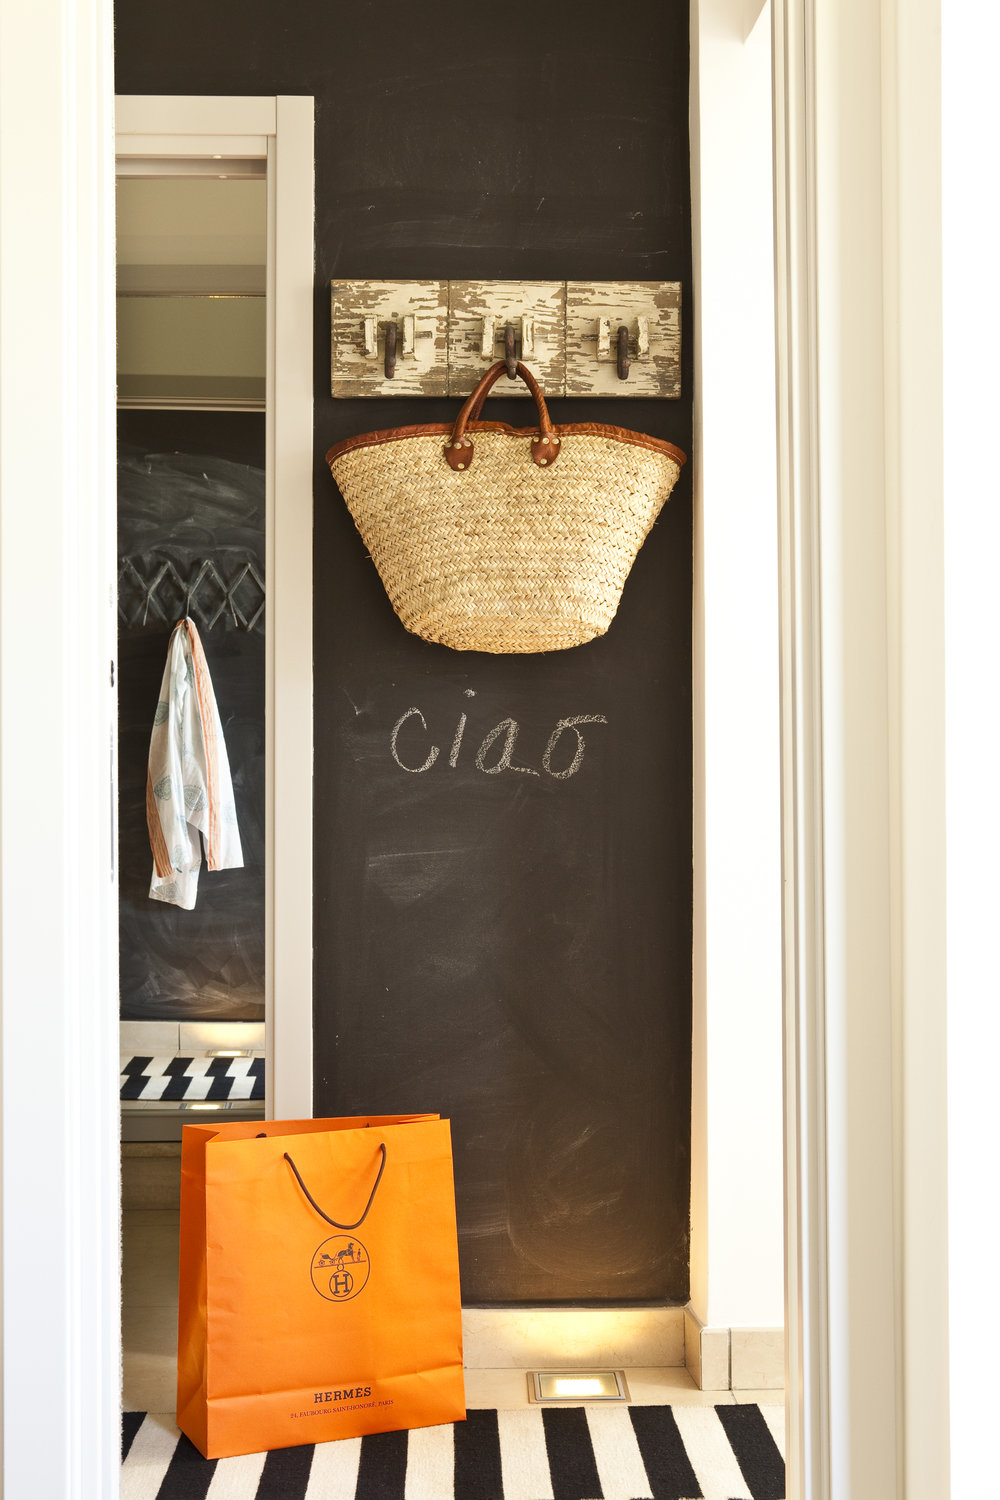 Entry blackboard message wall to the Villa Fiske apartment…